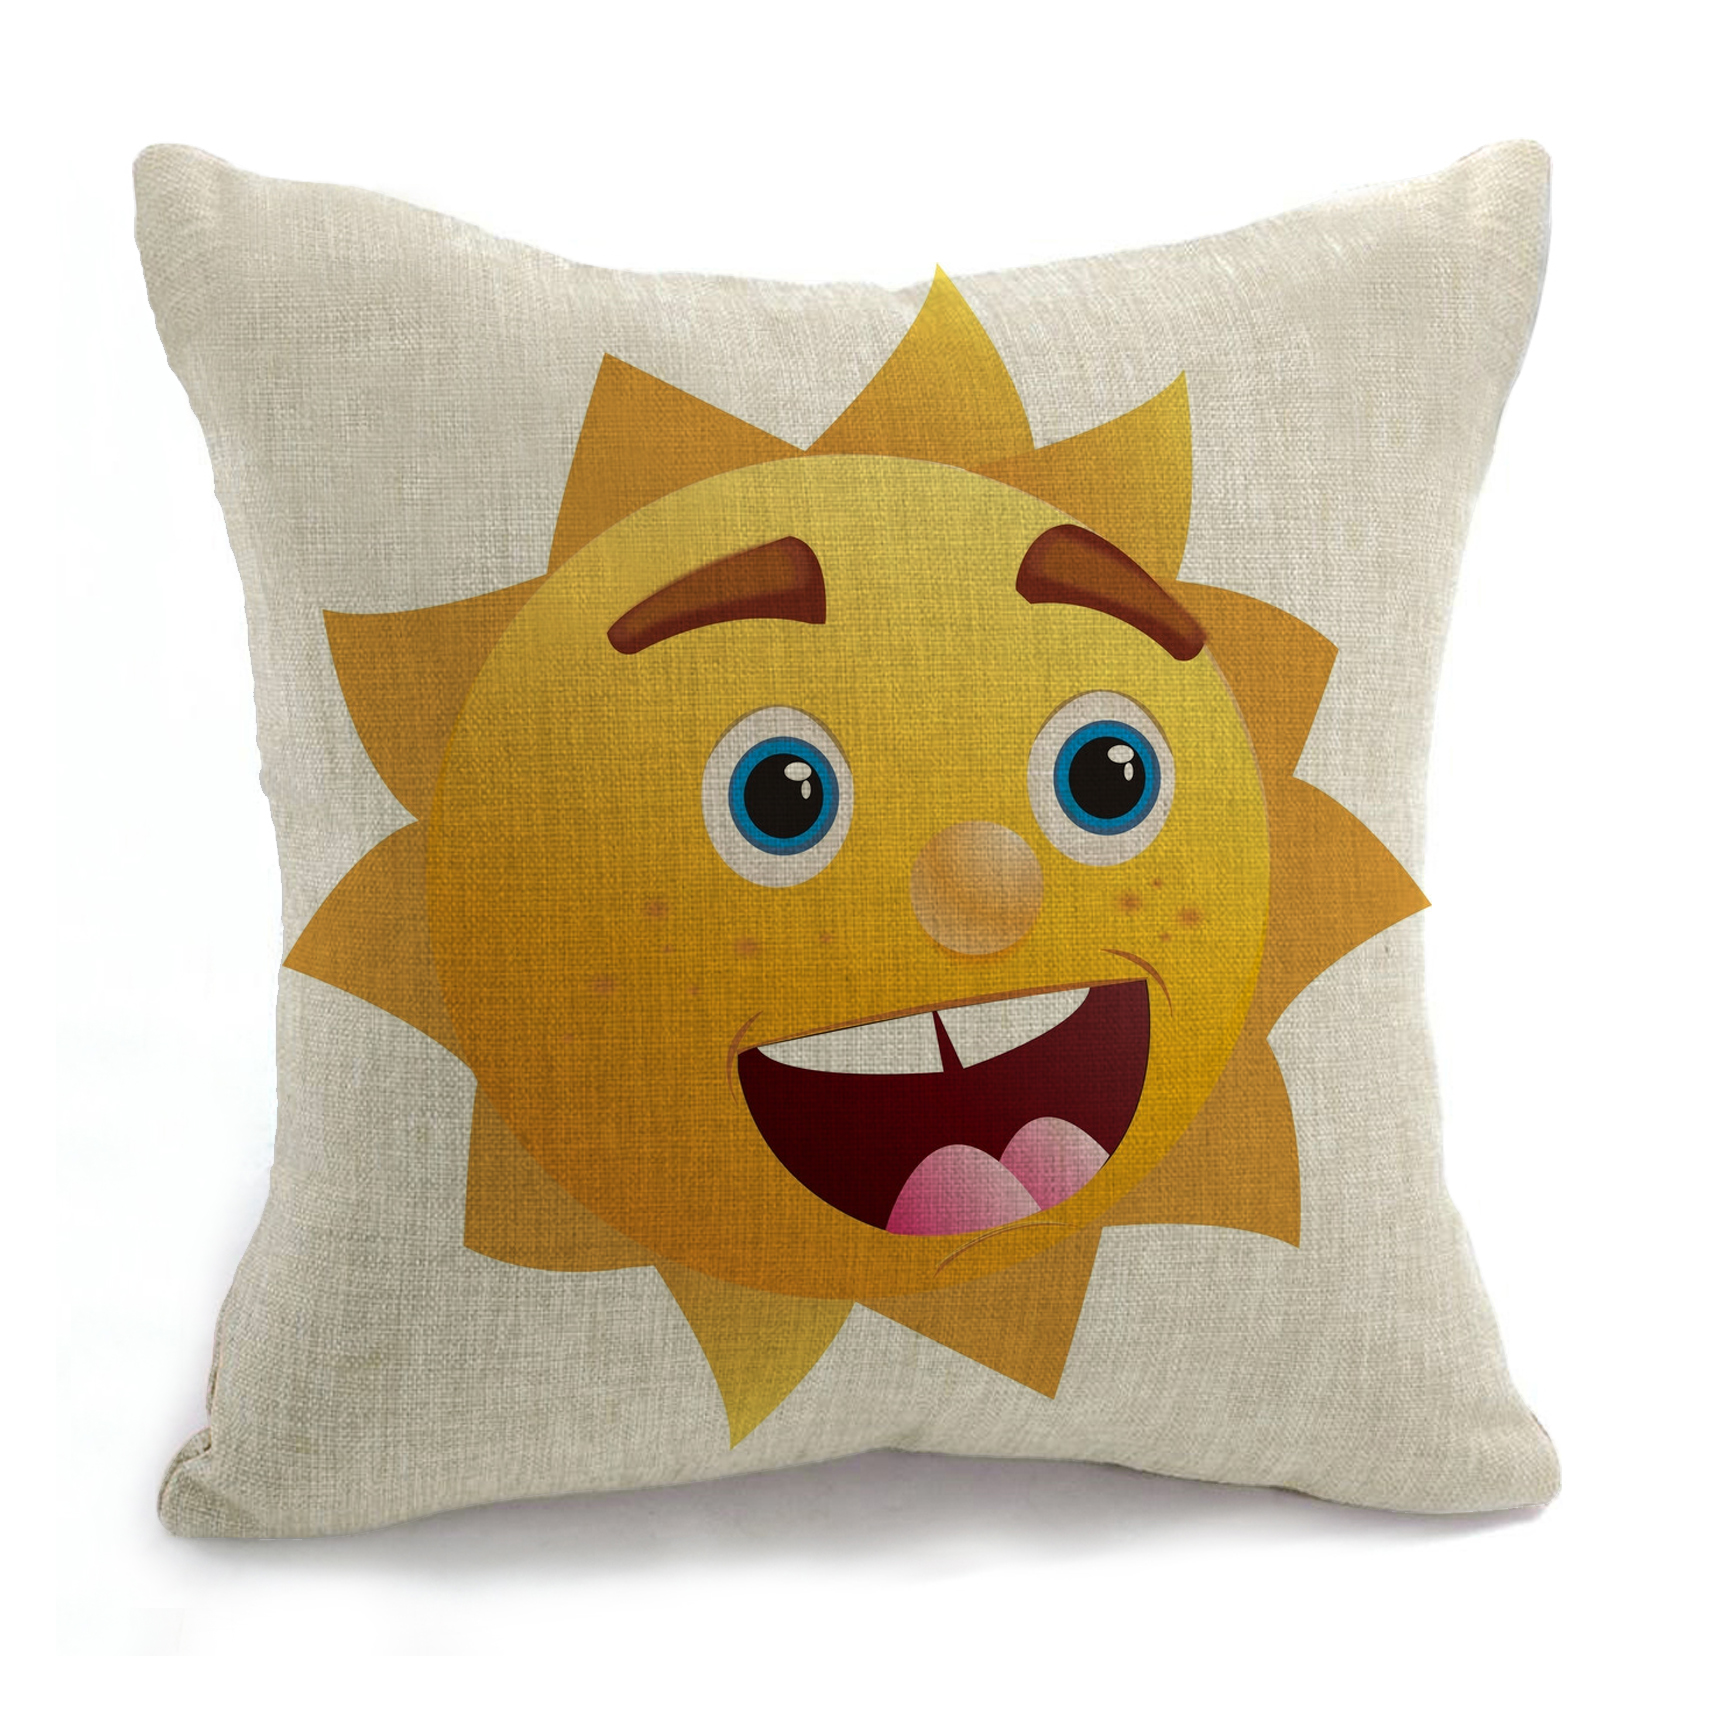 Scandinavian Pouf Decorativos Cojines 18 Inches Smile Decorative Throw Pillow Emoji Kussens Home Decor Cushion Coussin Almofada